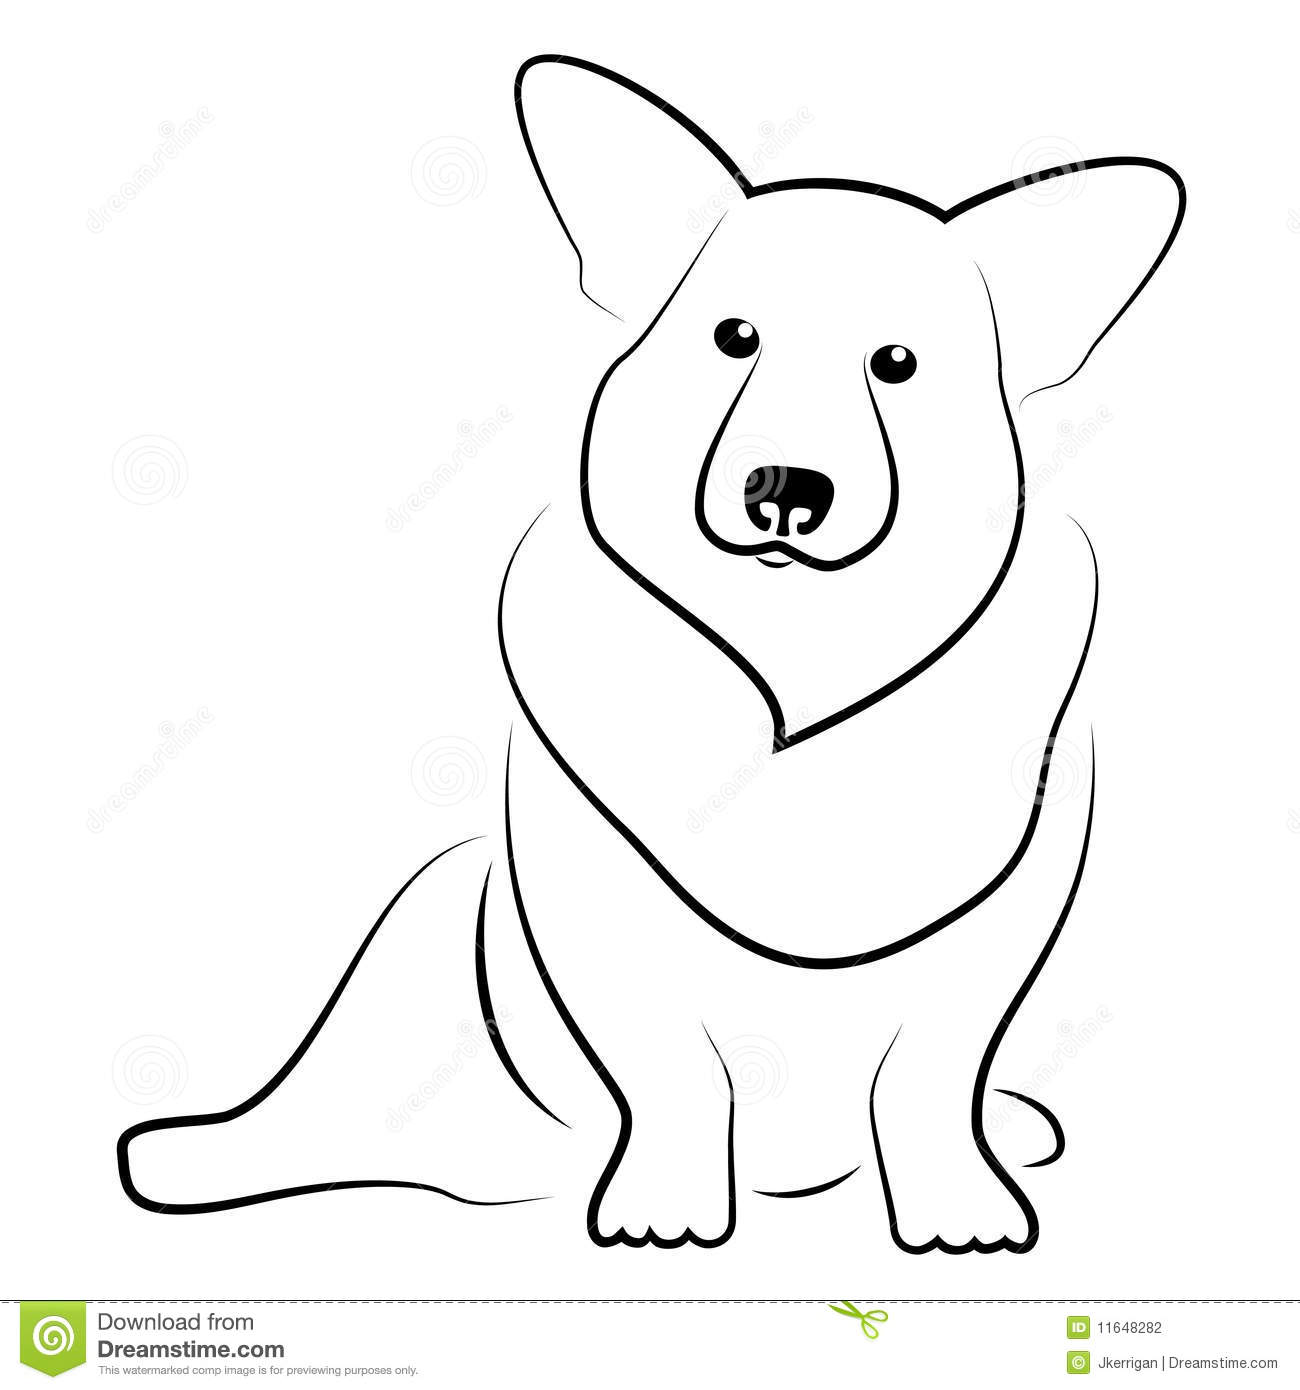 HD wallpapers coloring pages of dogs for free